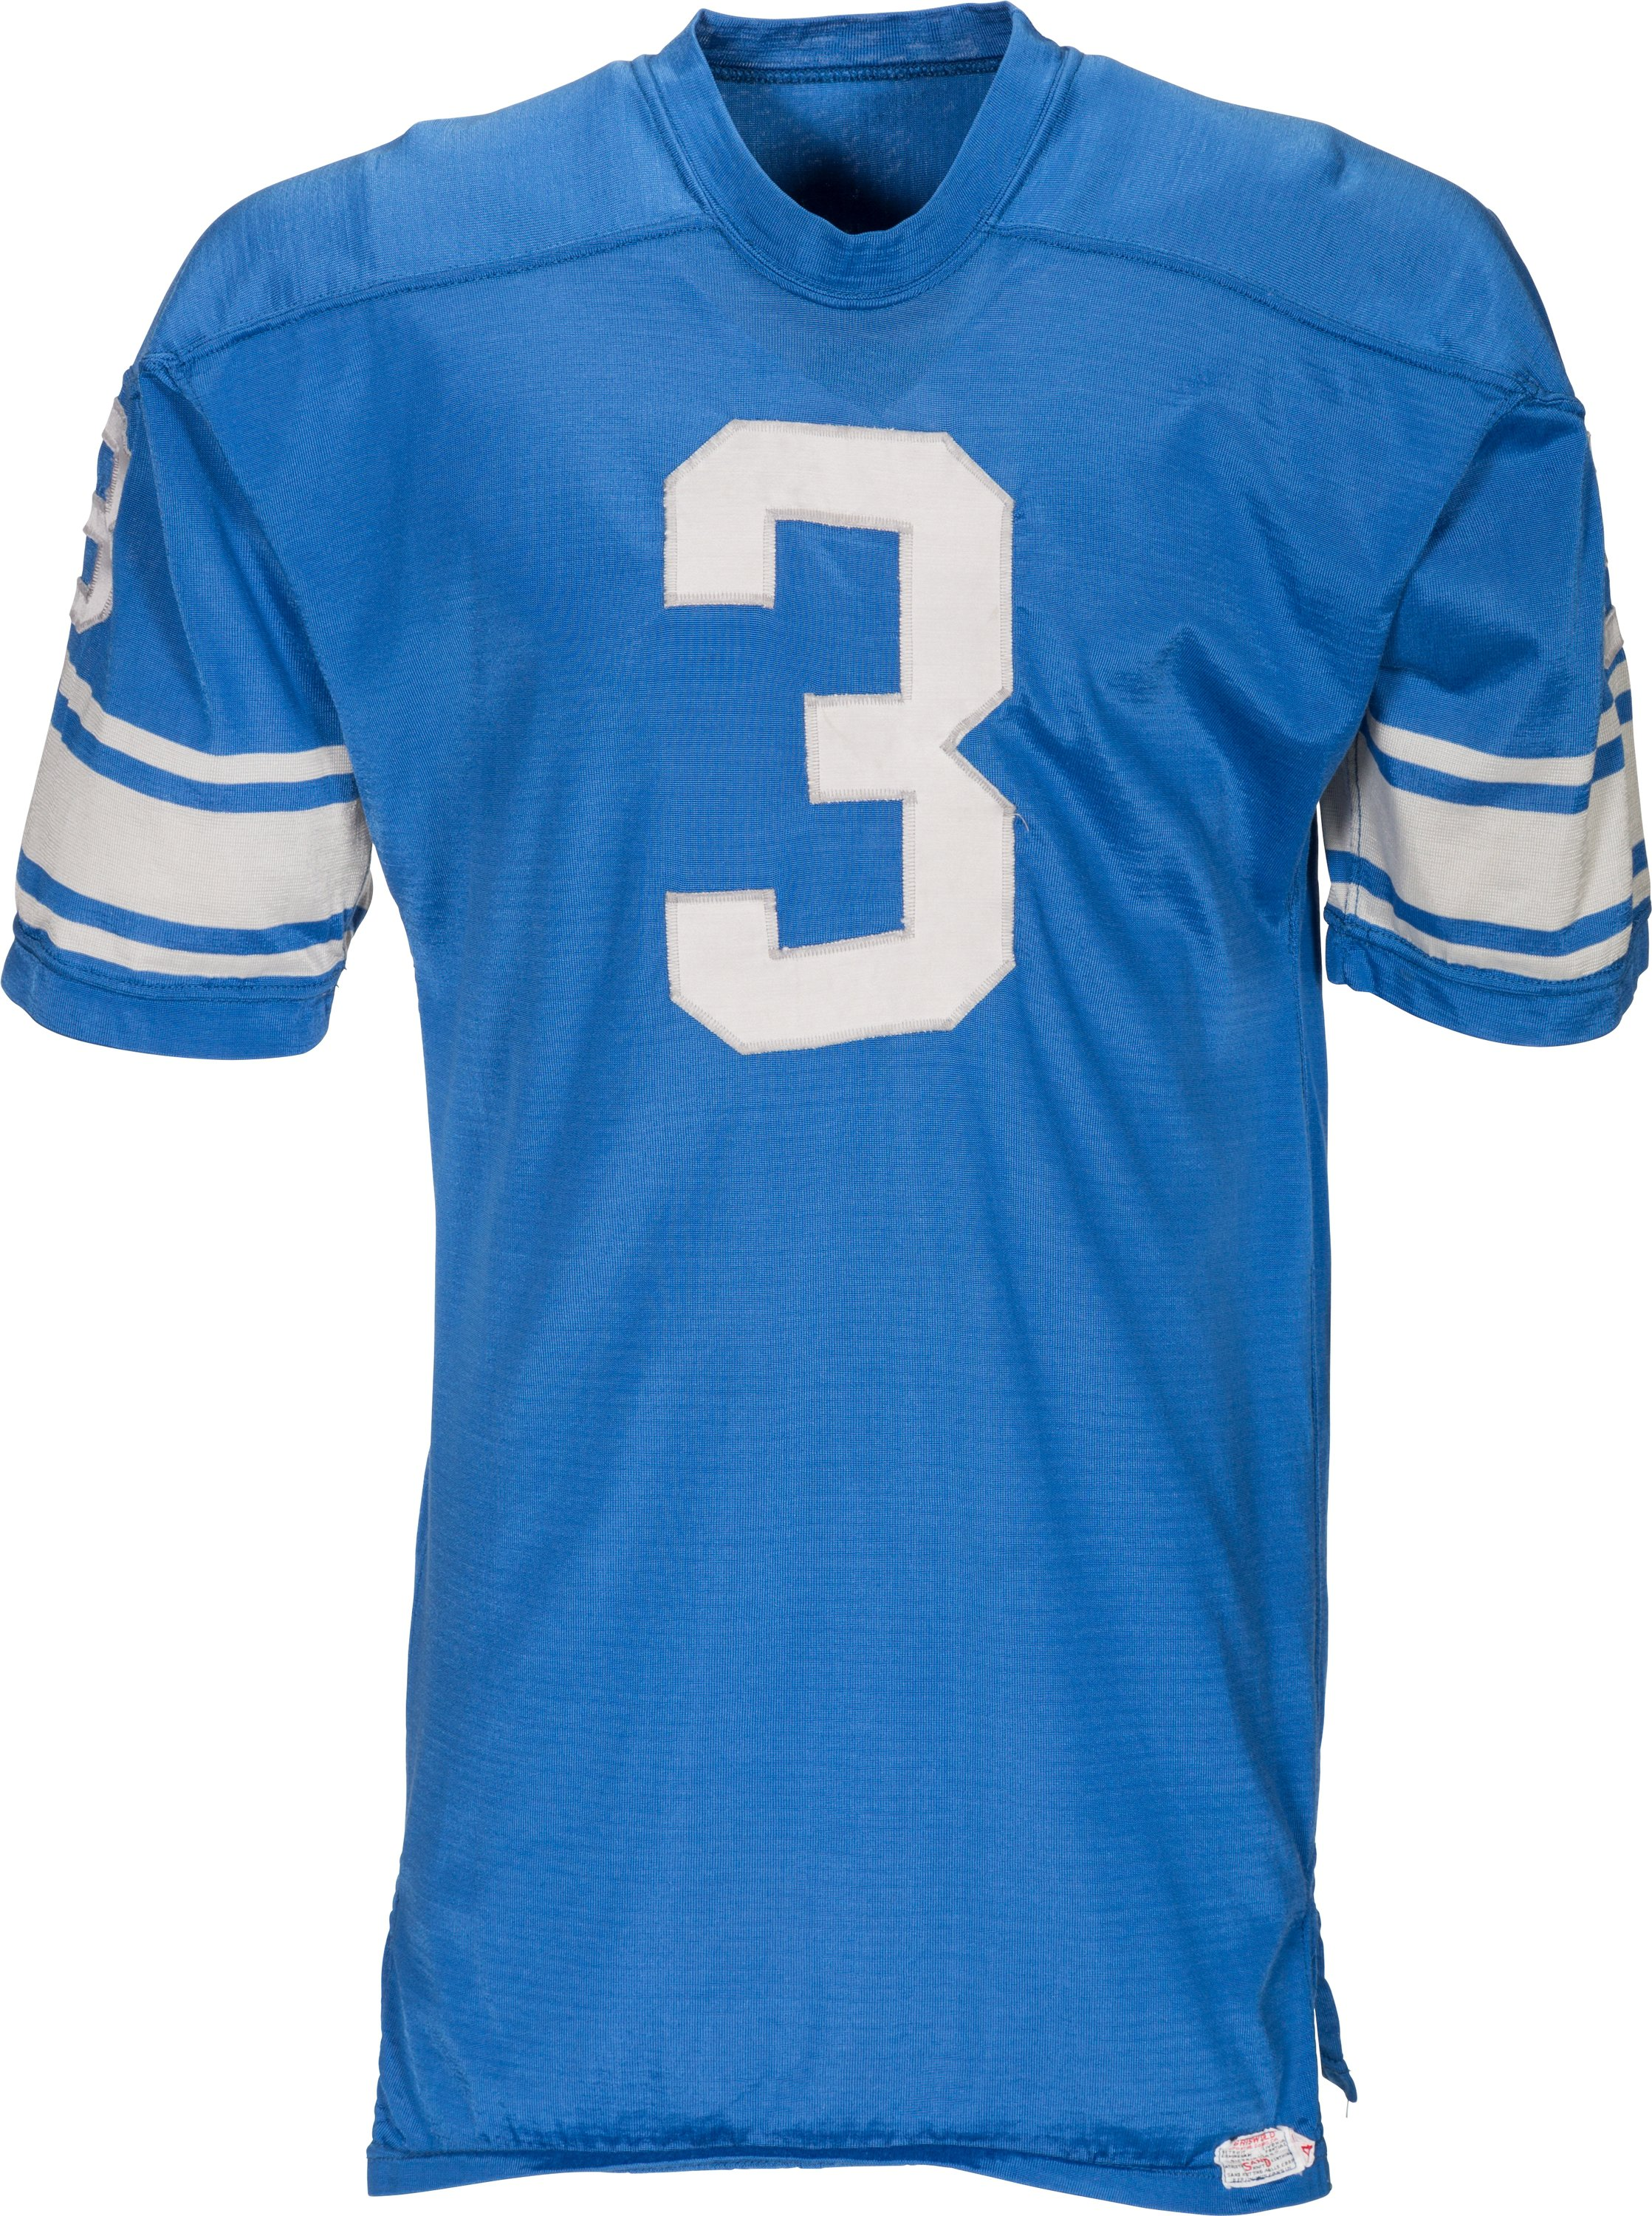 best service 0595f 9b511 1968 Billy Gambrell Game Worn Detroit Lions Jersey.... Football   Lot  #45198   Heritage Auctions